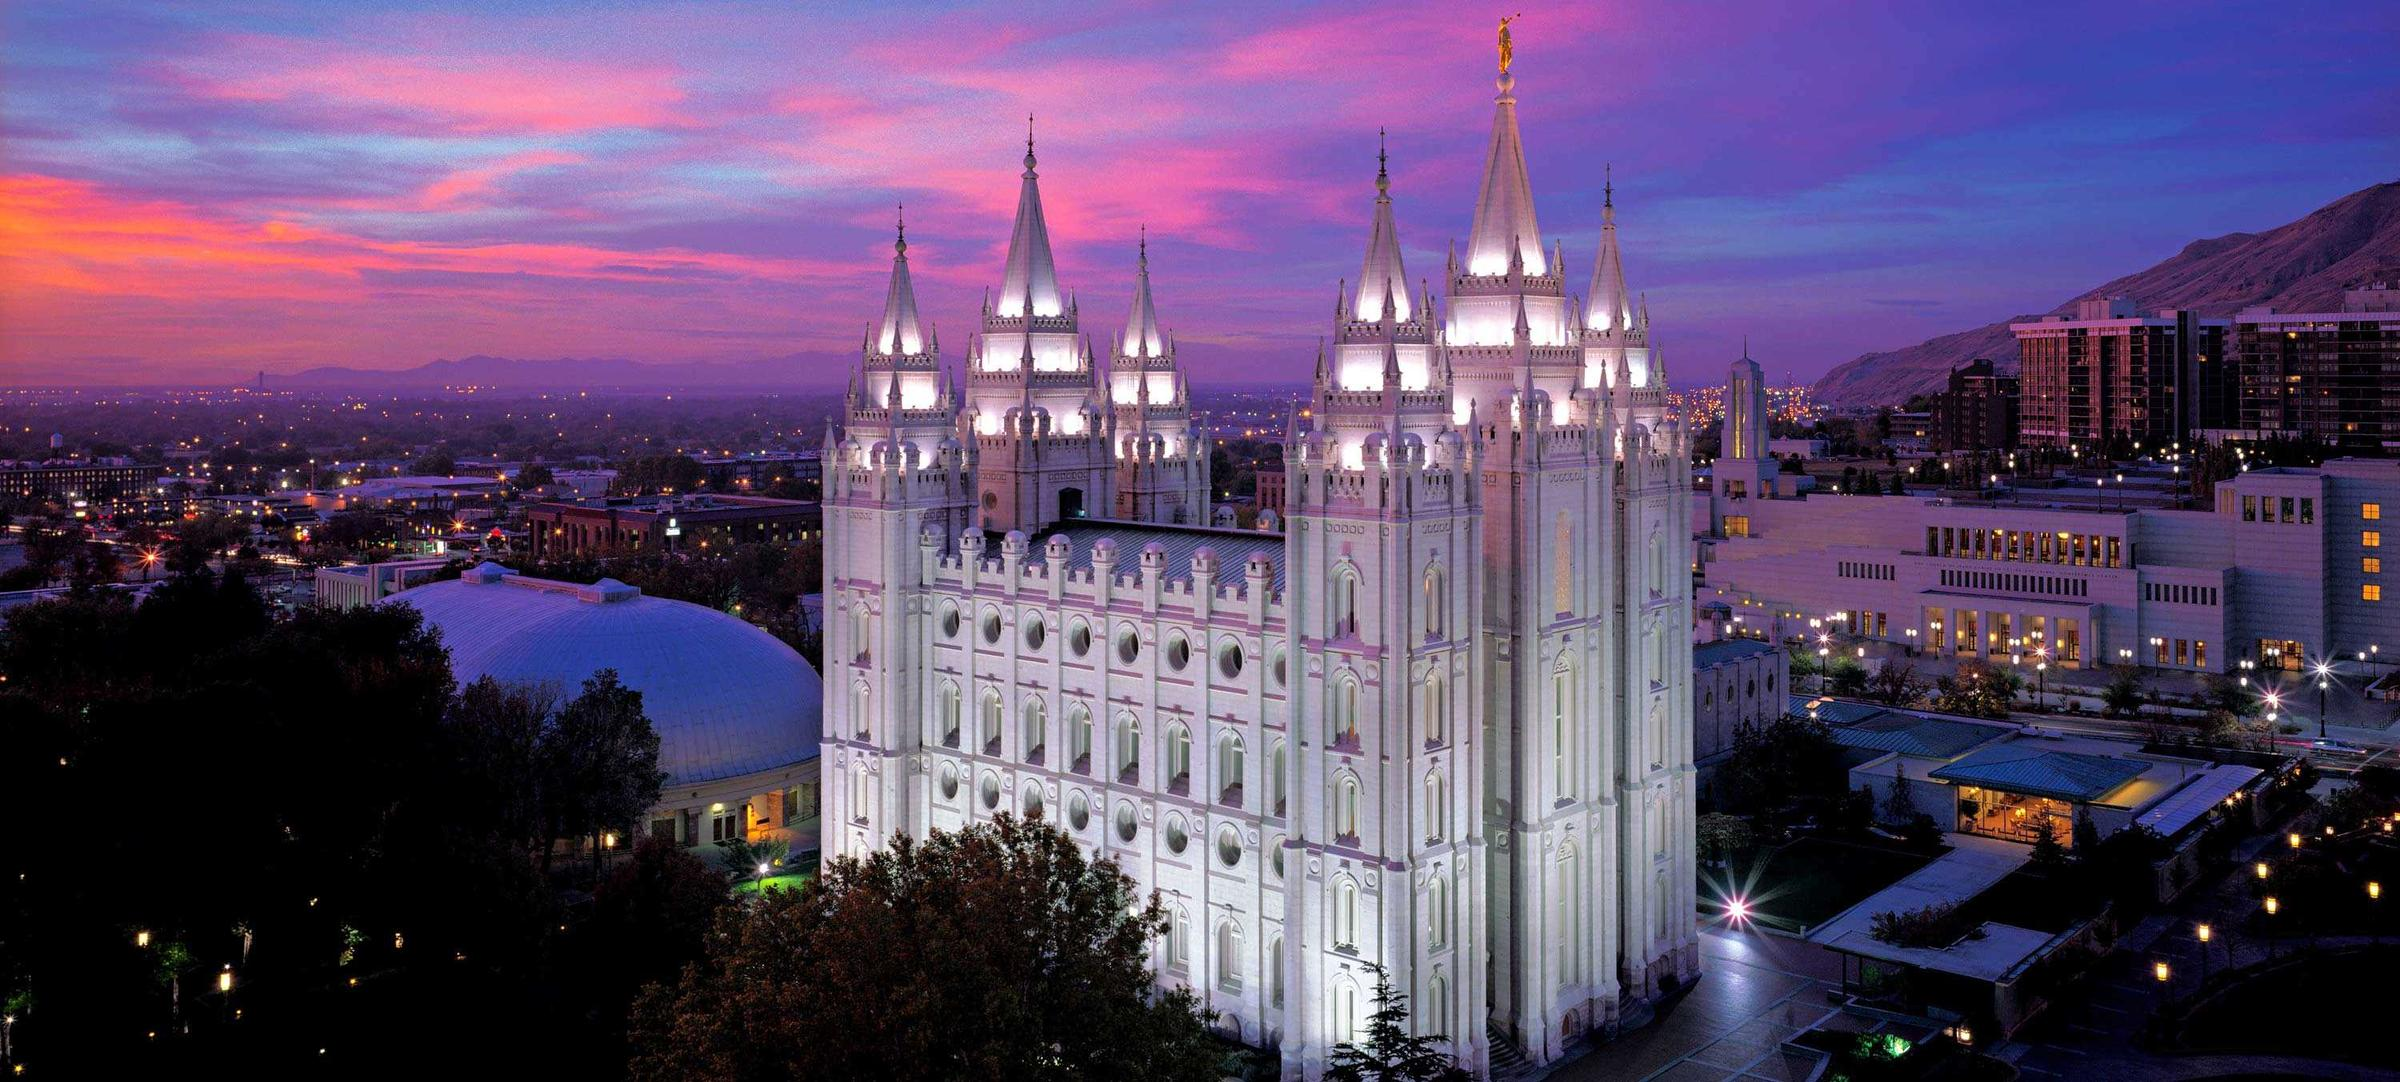 Millennial Mormons are leaving the church at a higher rate than past  generations. LDS families are finding ways to bridge these faith divides.